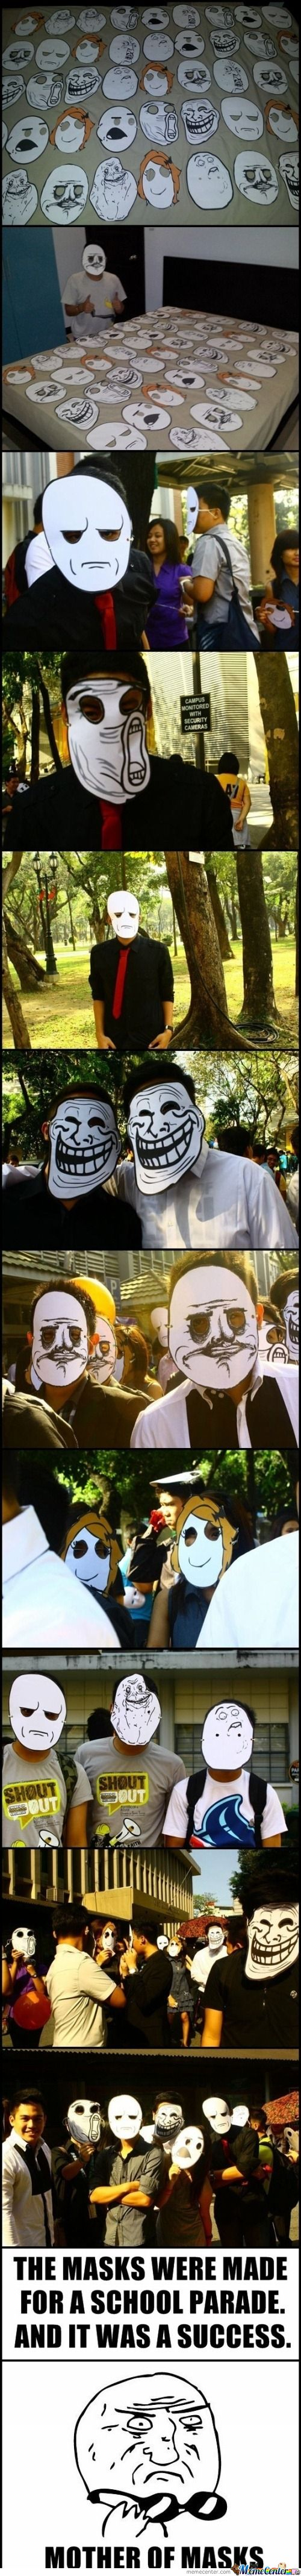 Mother Of Masks